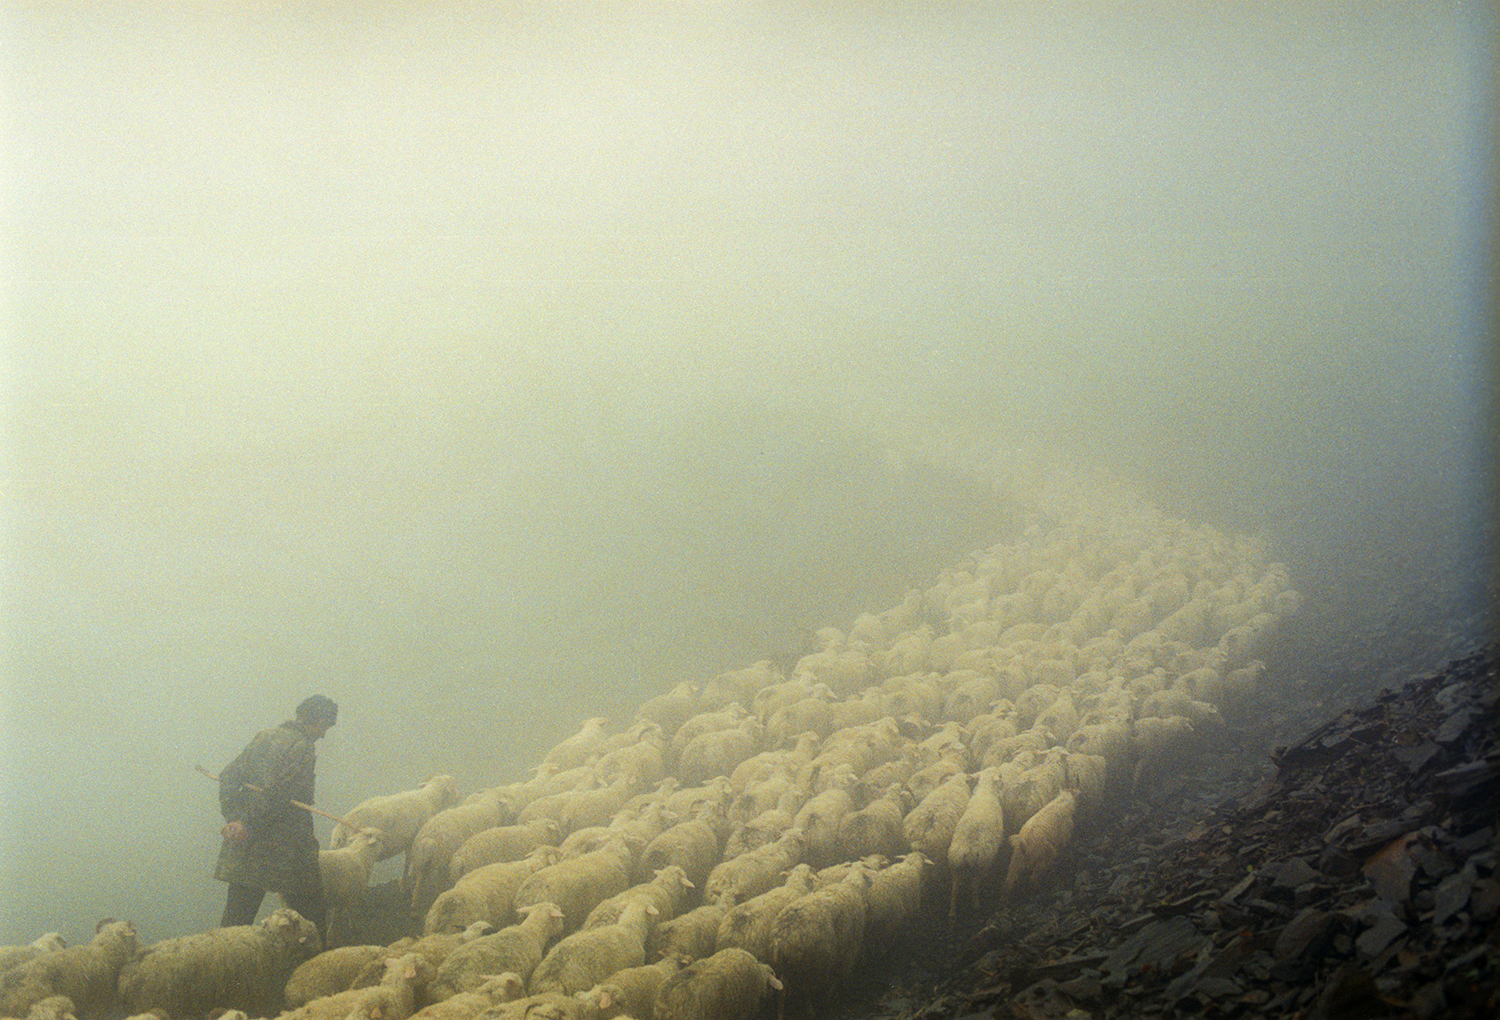 Up to the Mountains in the Fog   Dmitry Gomberg  6 x 9, Edition of 5, signed and numbered Archival inkjet print